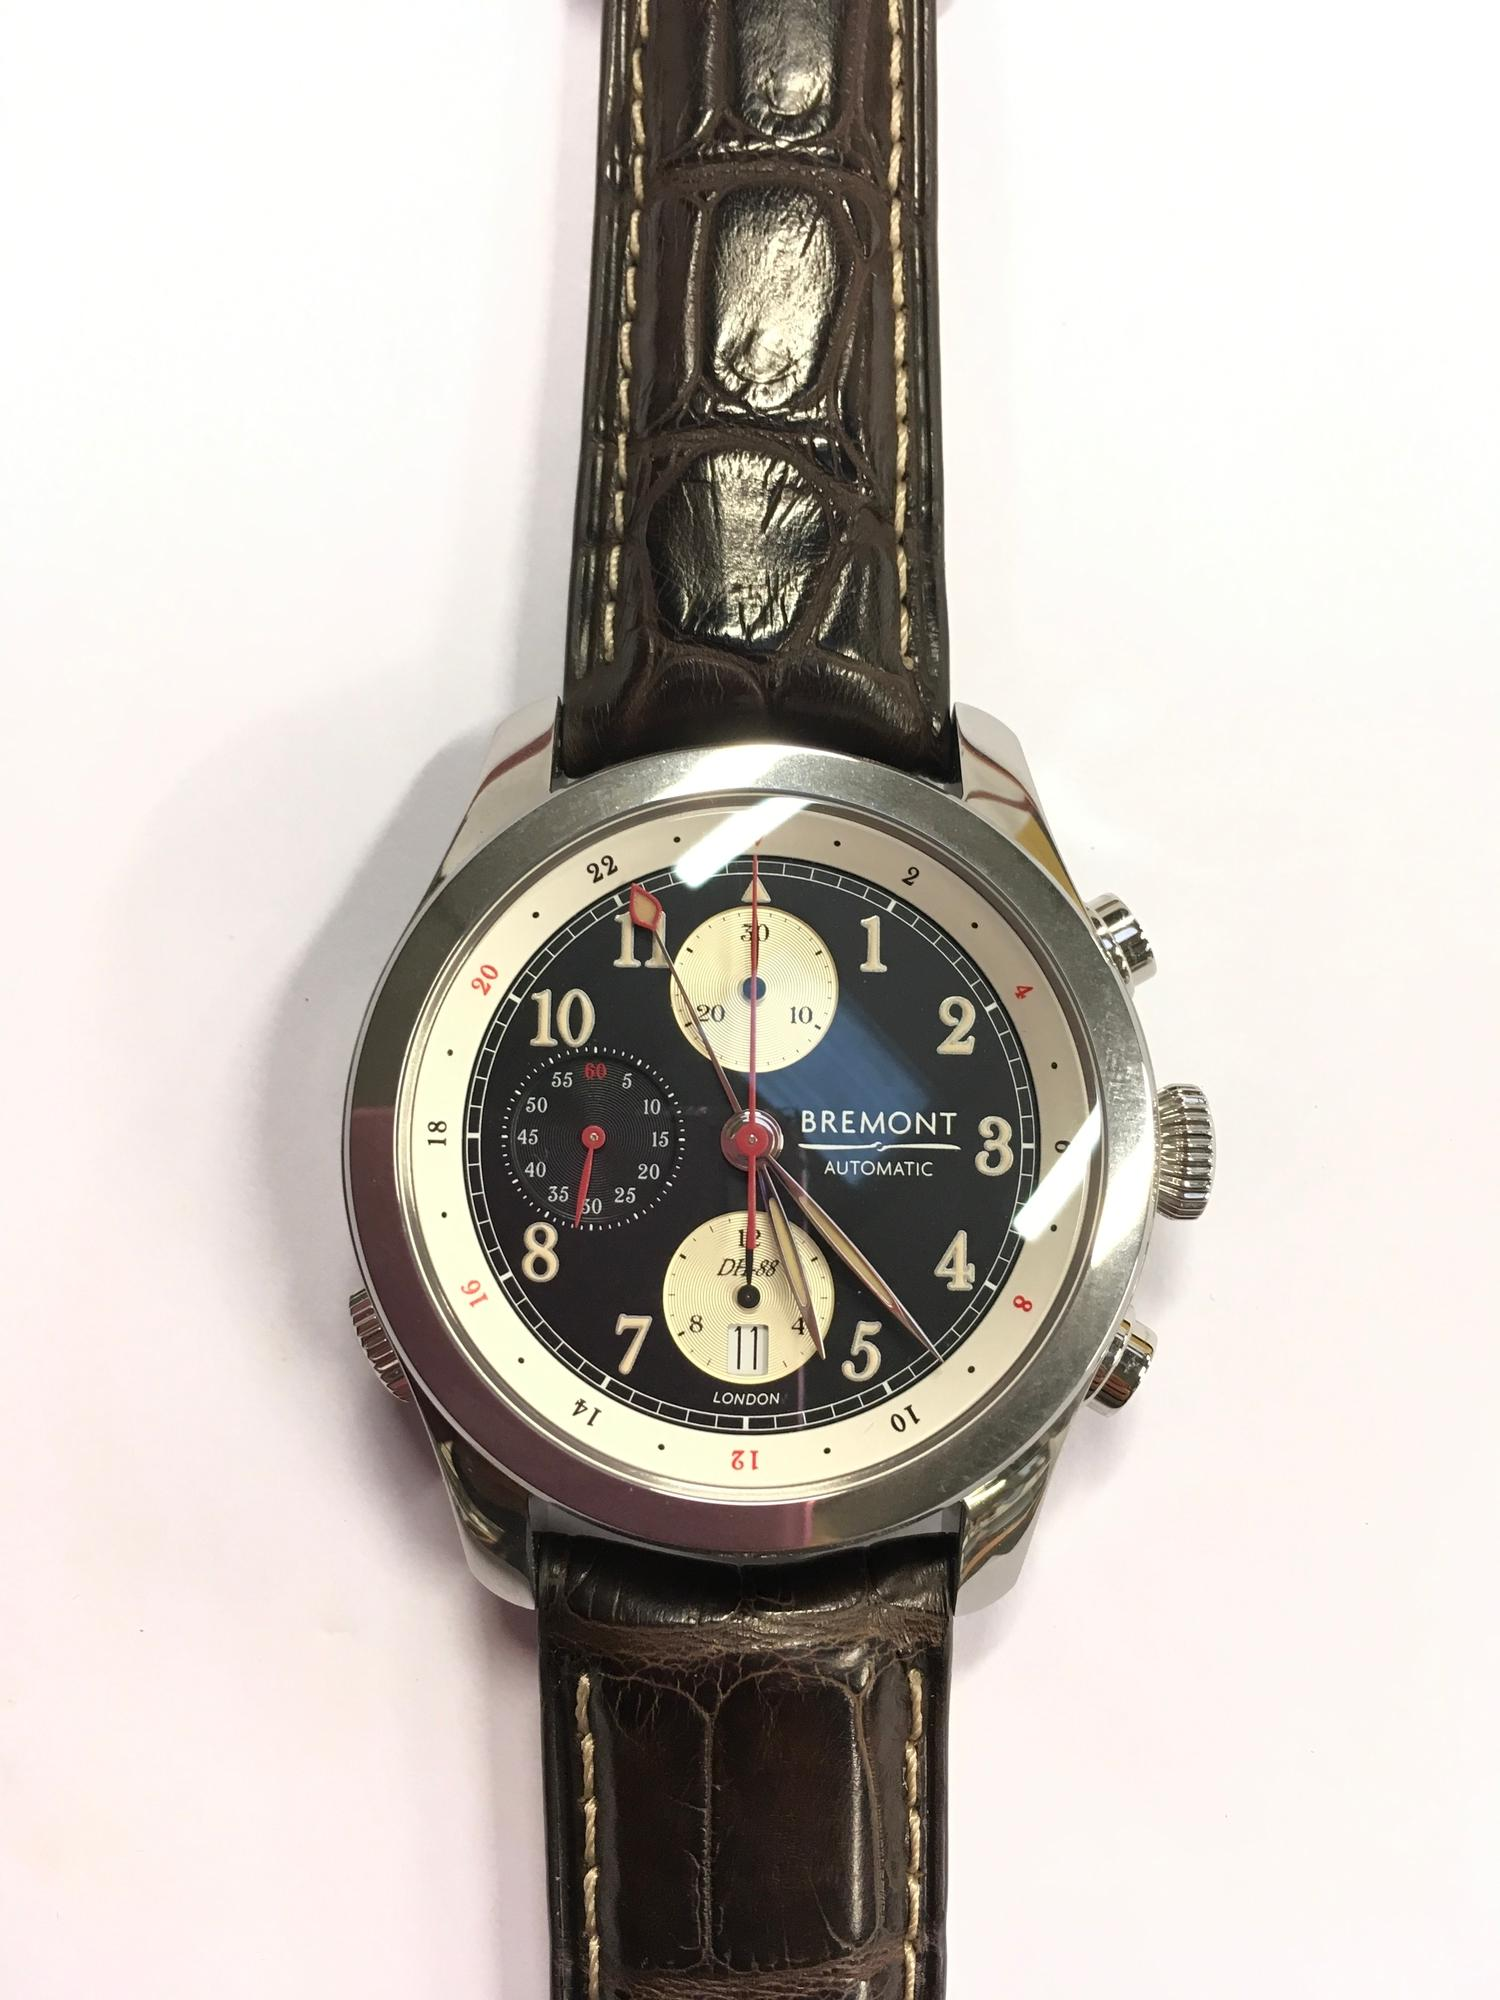 Bremont Stainless Steel gents watch, DH-88 Comet Limited Edition.